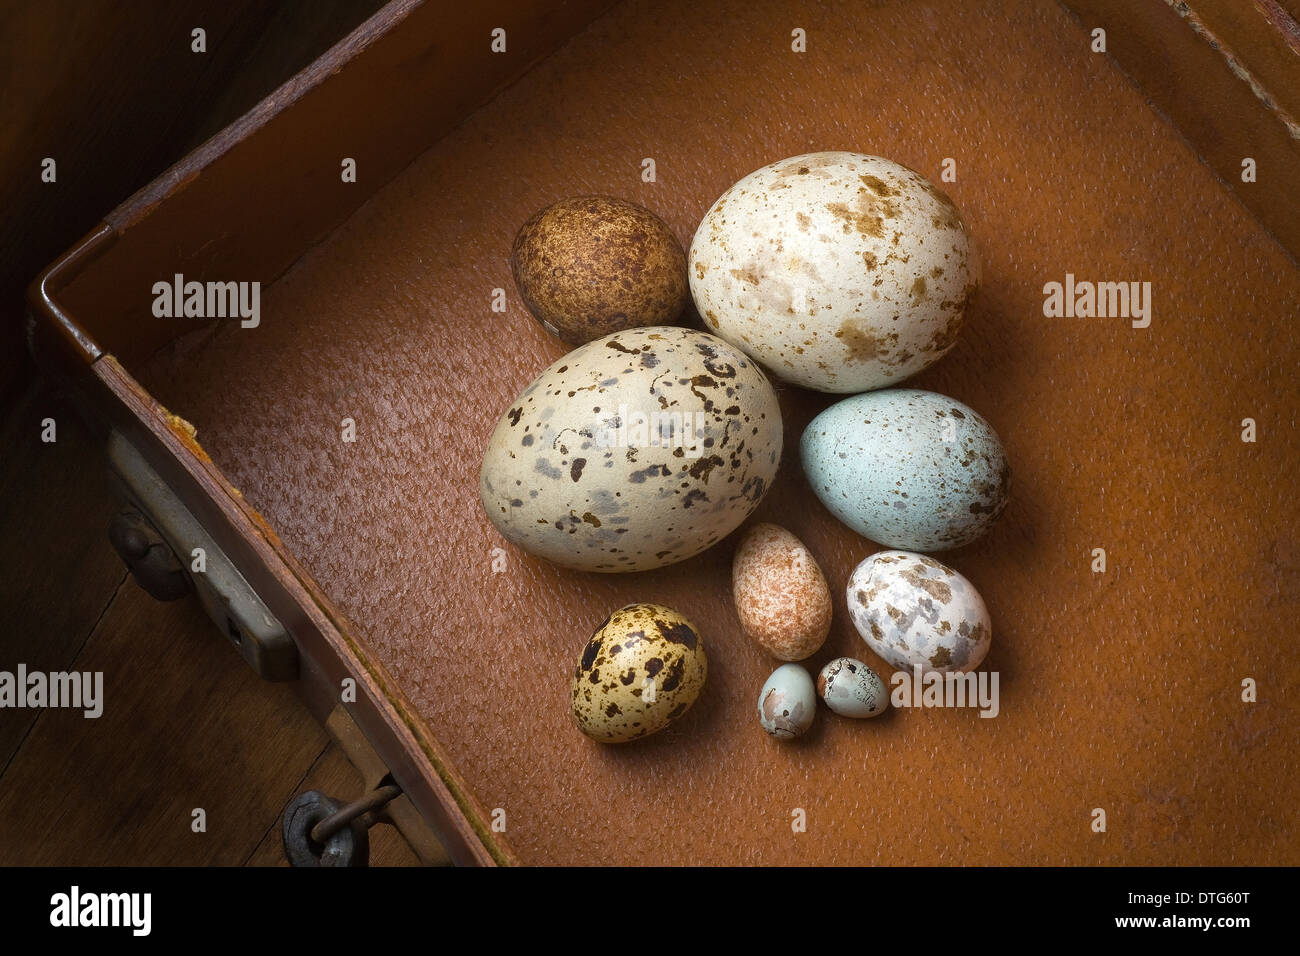 Clutch of eggs - Stock Image